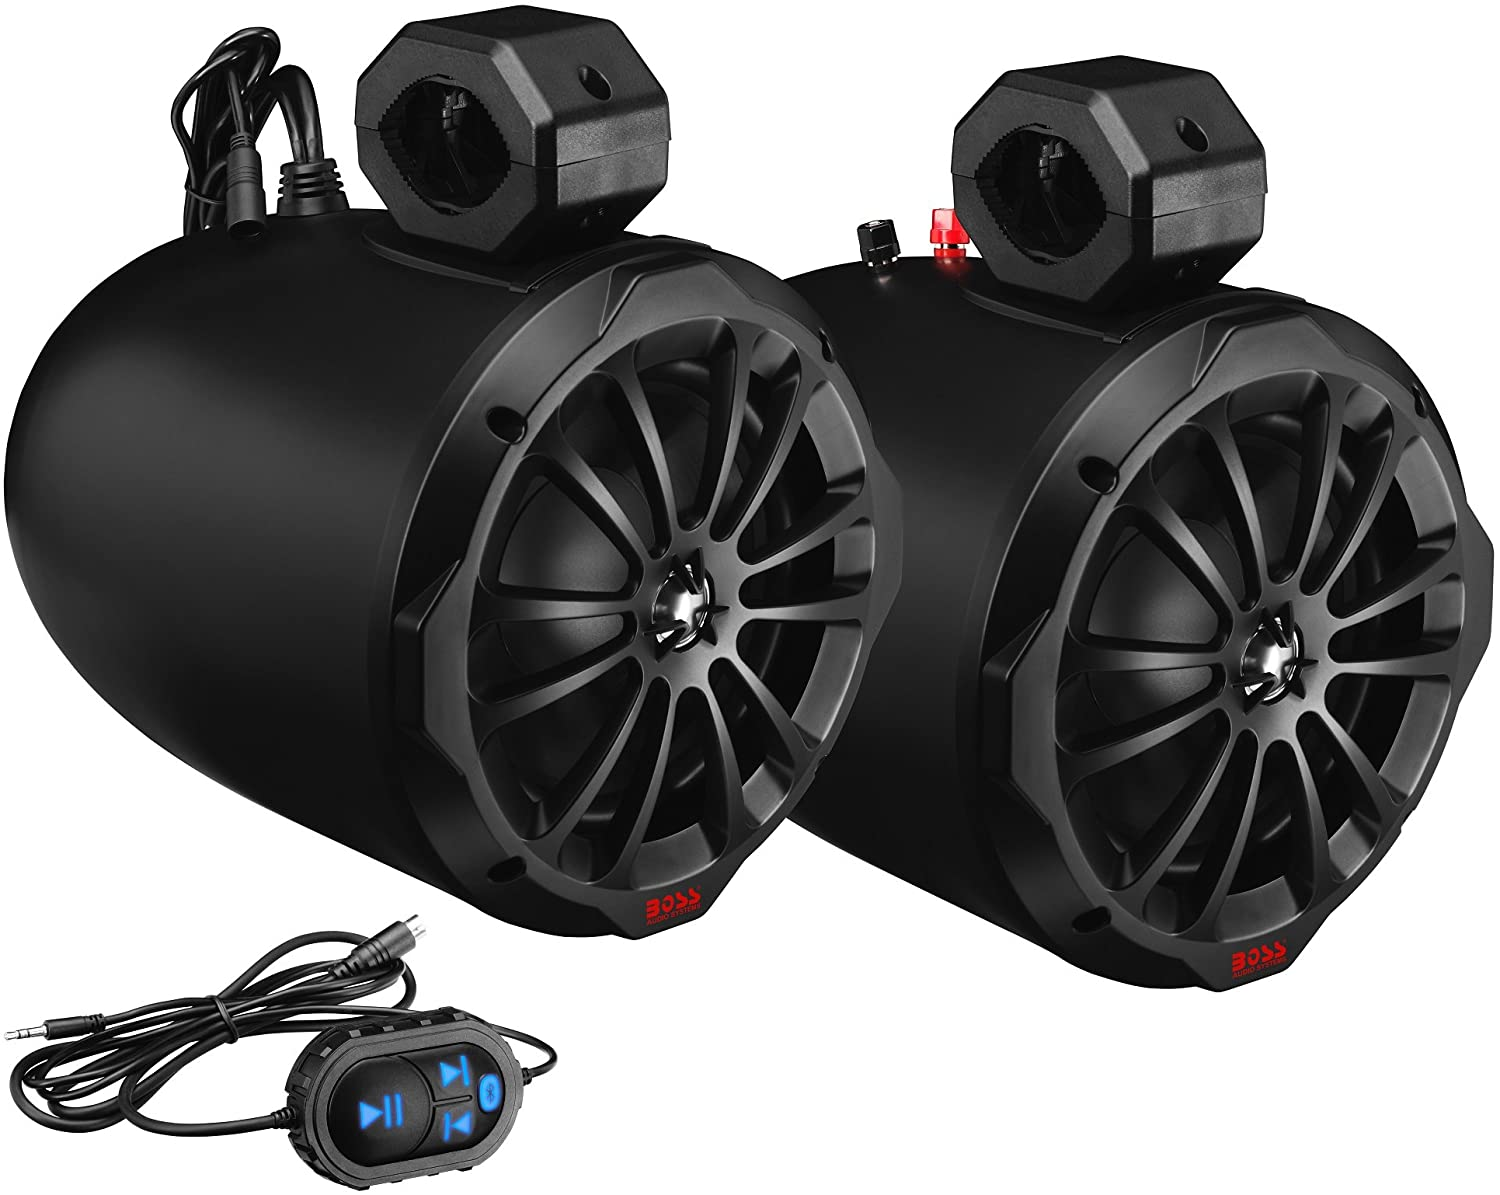 BOSS Audio Systems B82ABT ATV Waketower Speaker System - Amplified, 800 Watts Per Pair, 200 Watts Each, 8 Inch, Full Range, 2 Way, Bluetooth, Weatherproof, Sold in Pairs